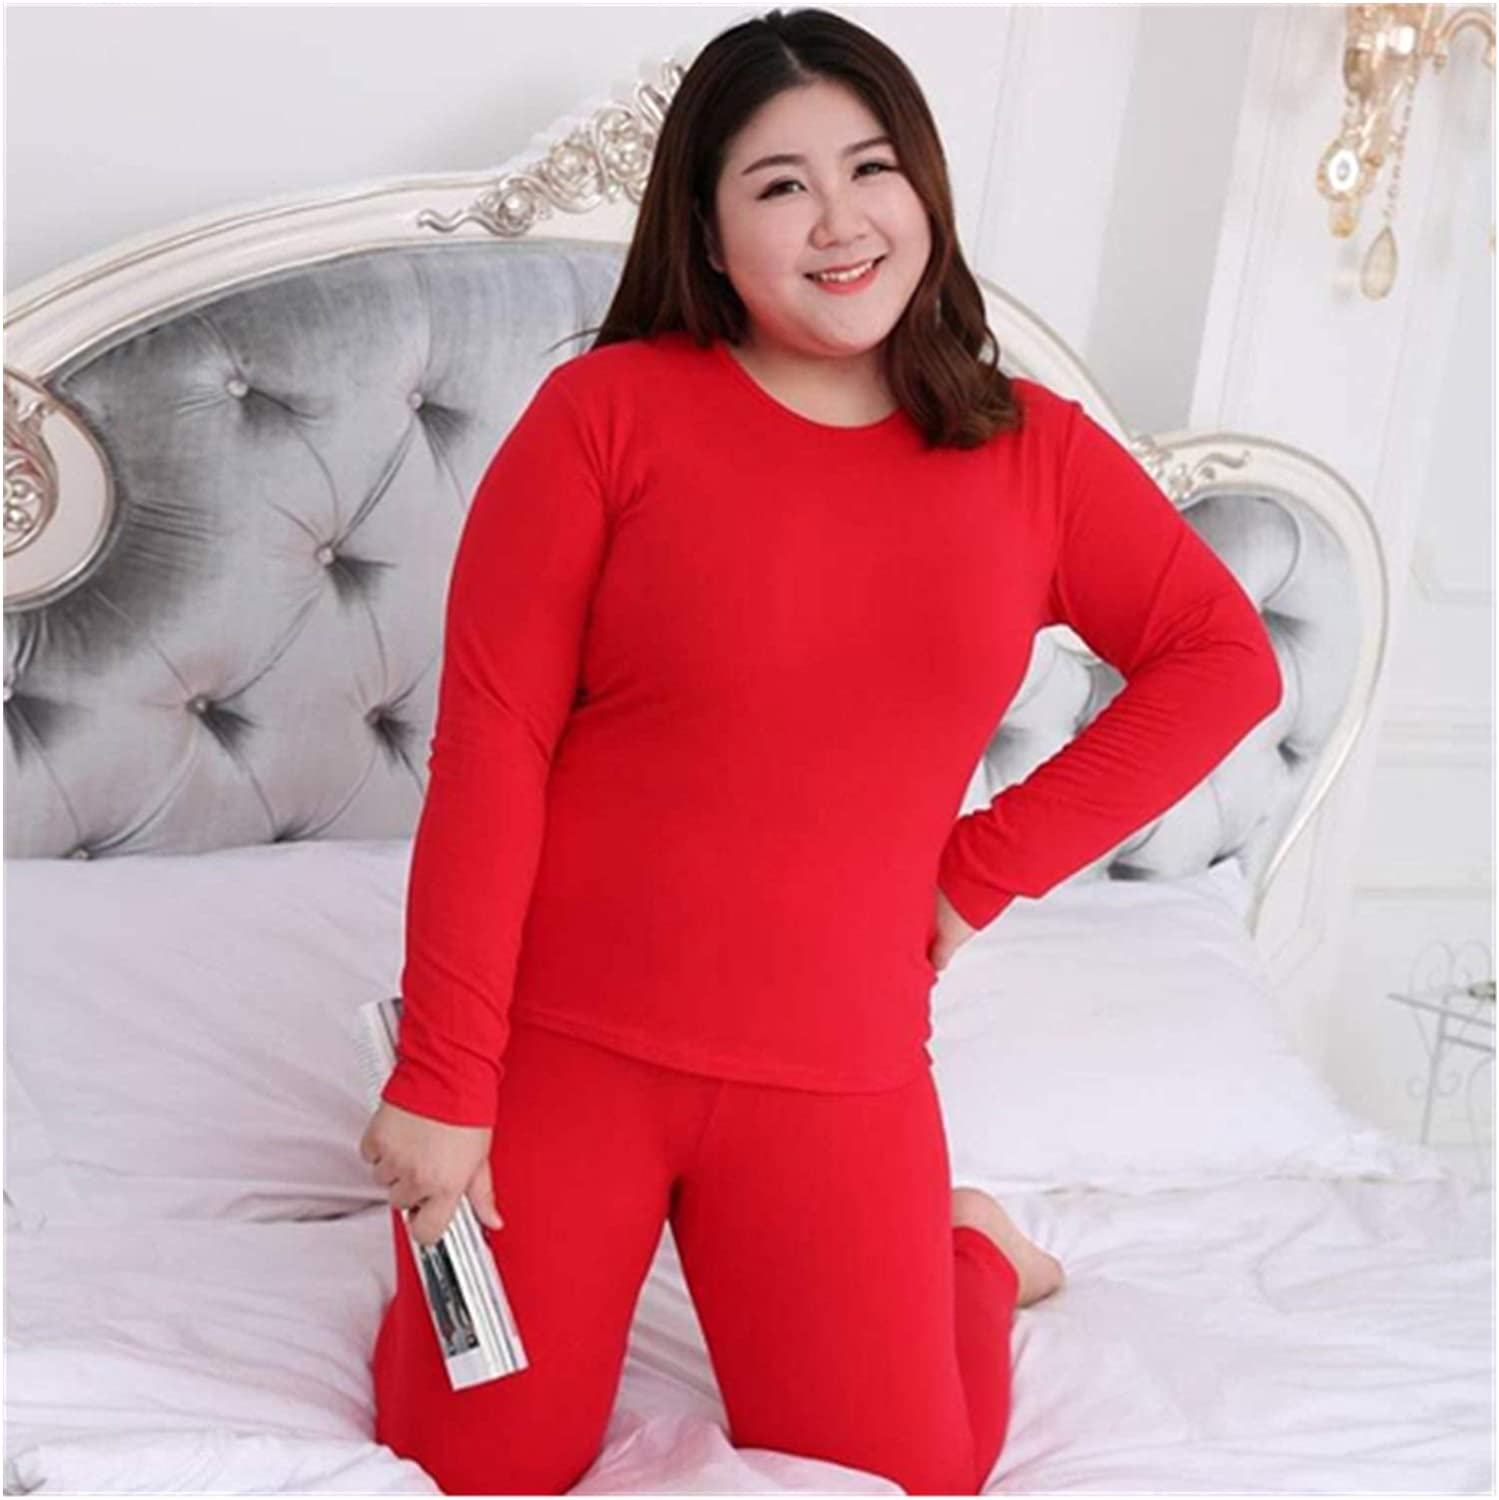 Winter Clothes Women Long Sleeve Plus Size Thermal Long Johns Autumn Long Johns Solid Warm Women Thermal Underwear (Color : R J 283 Hong, Size : M)